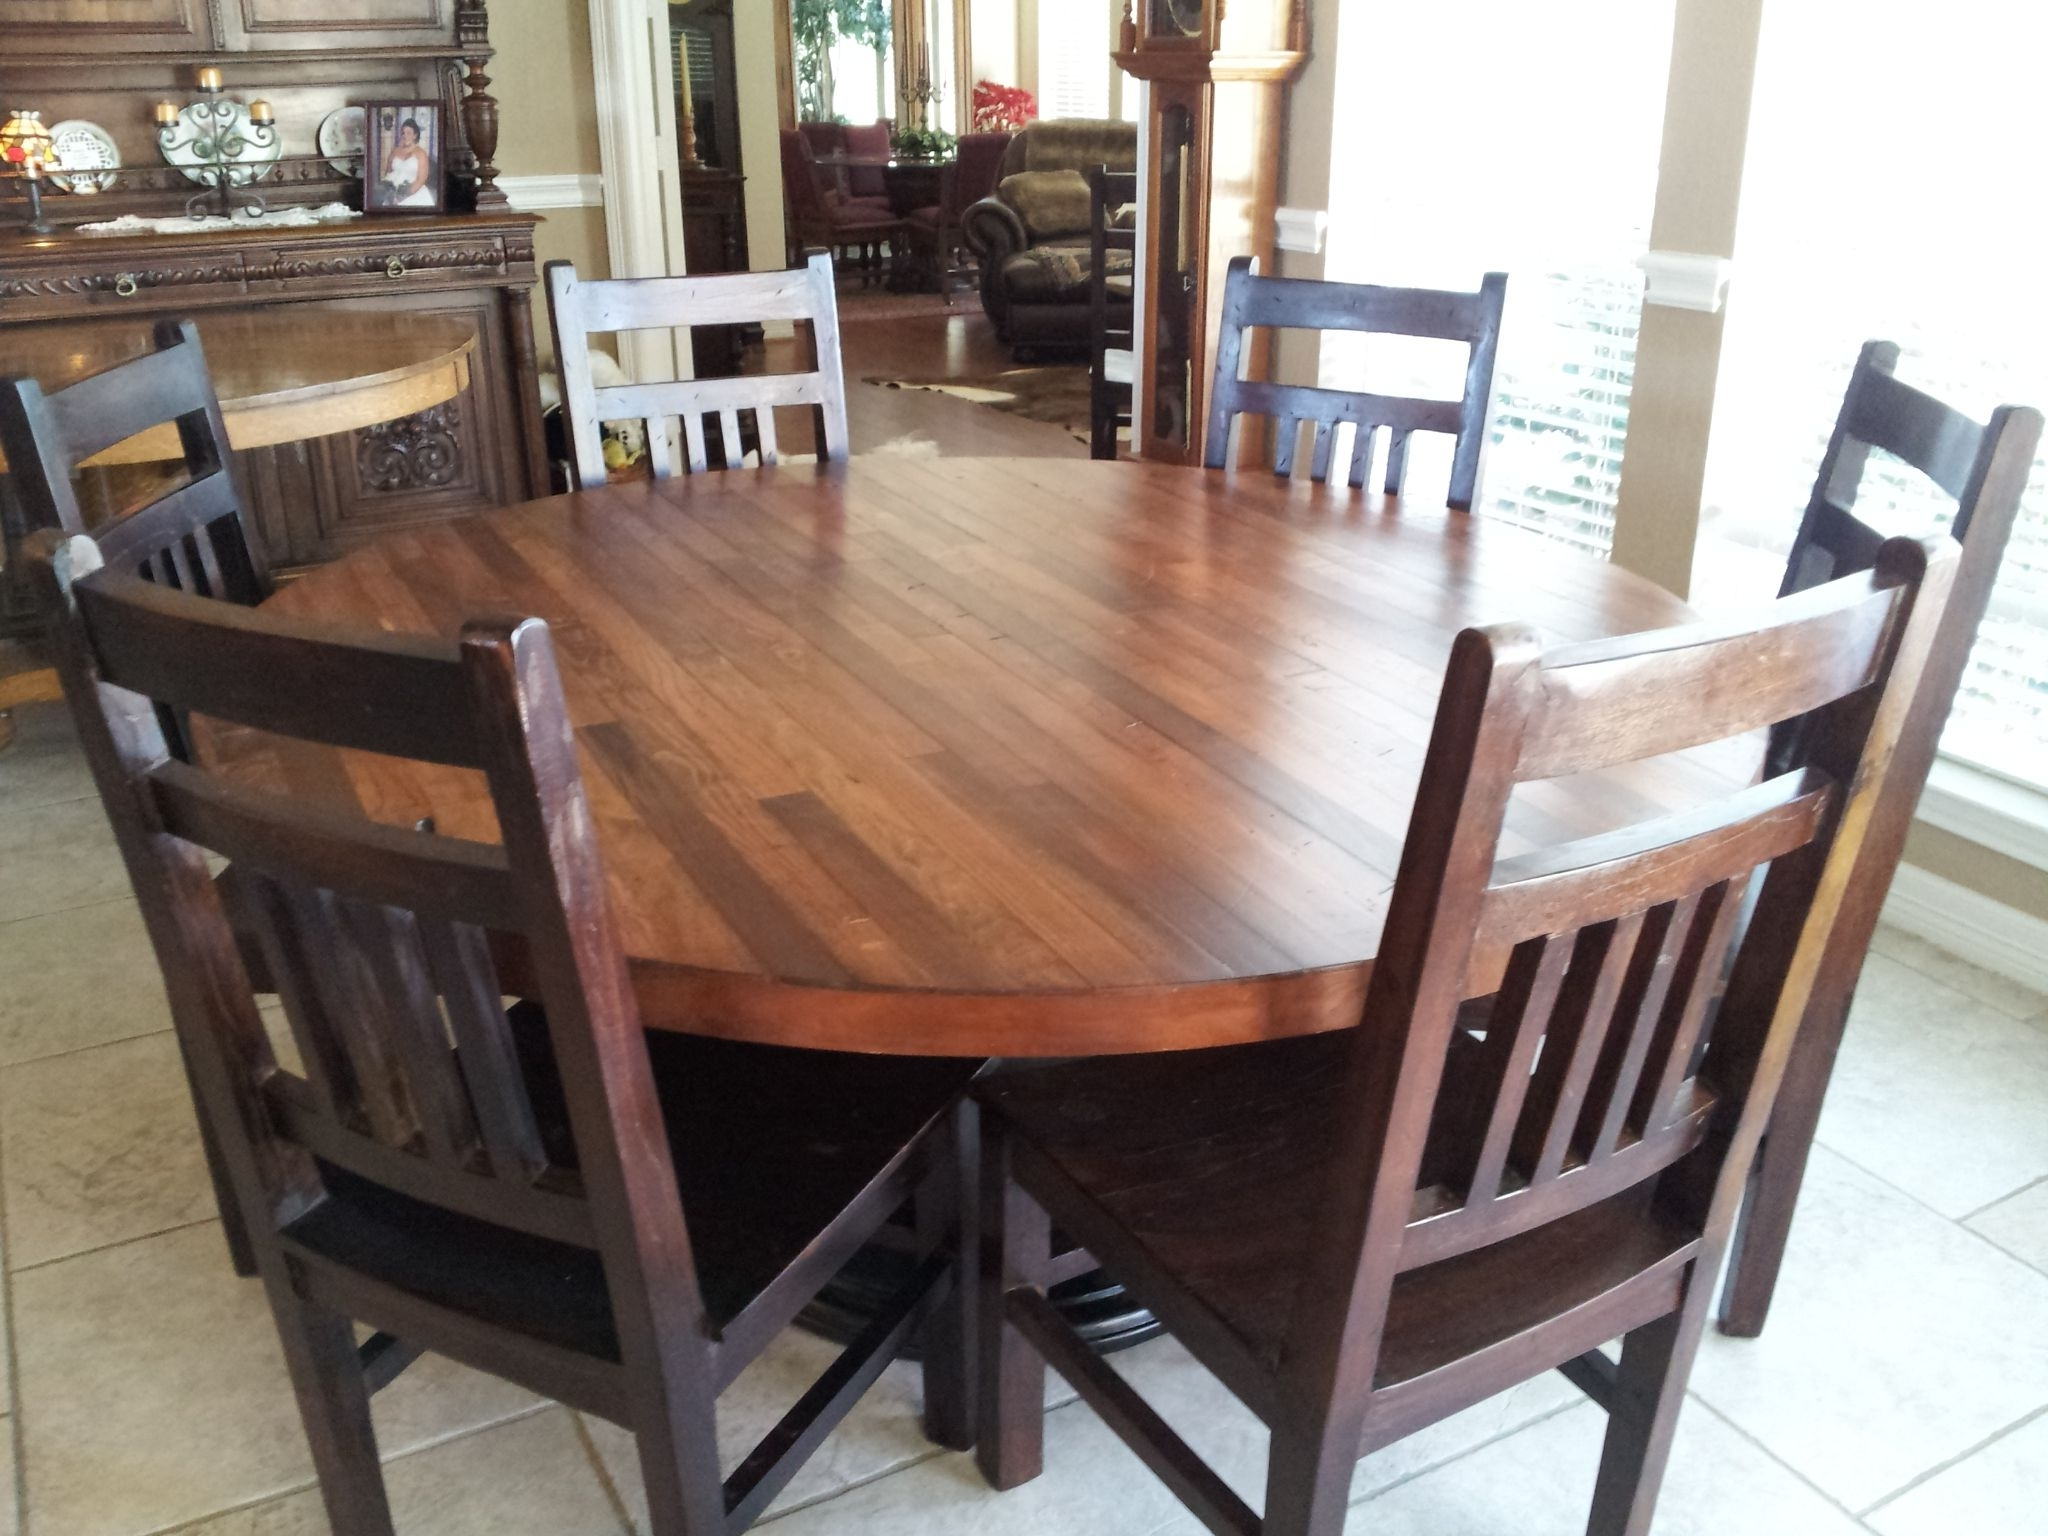 Fashionable Walnut Dining Tables And Chairs Throughout Walnut Dining Tables (View 7 of 25)